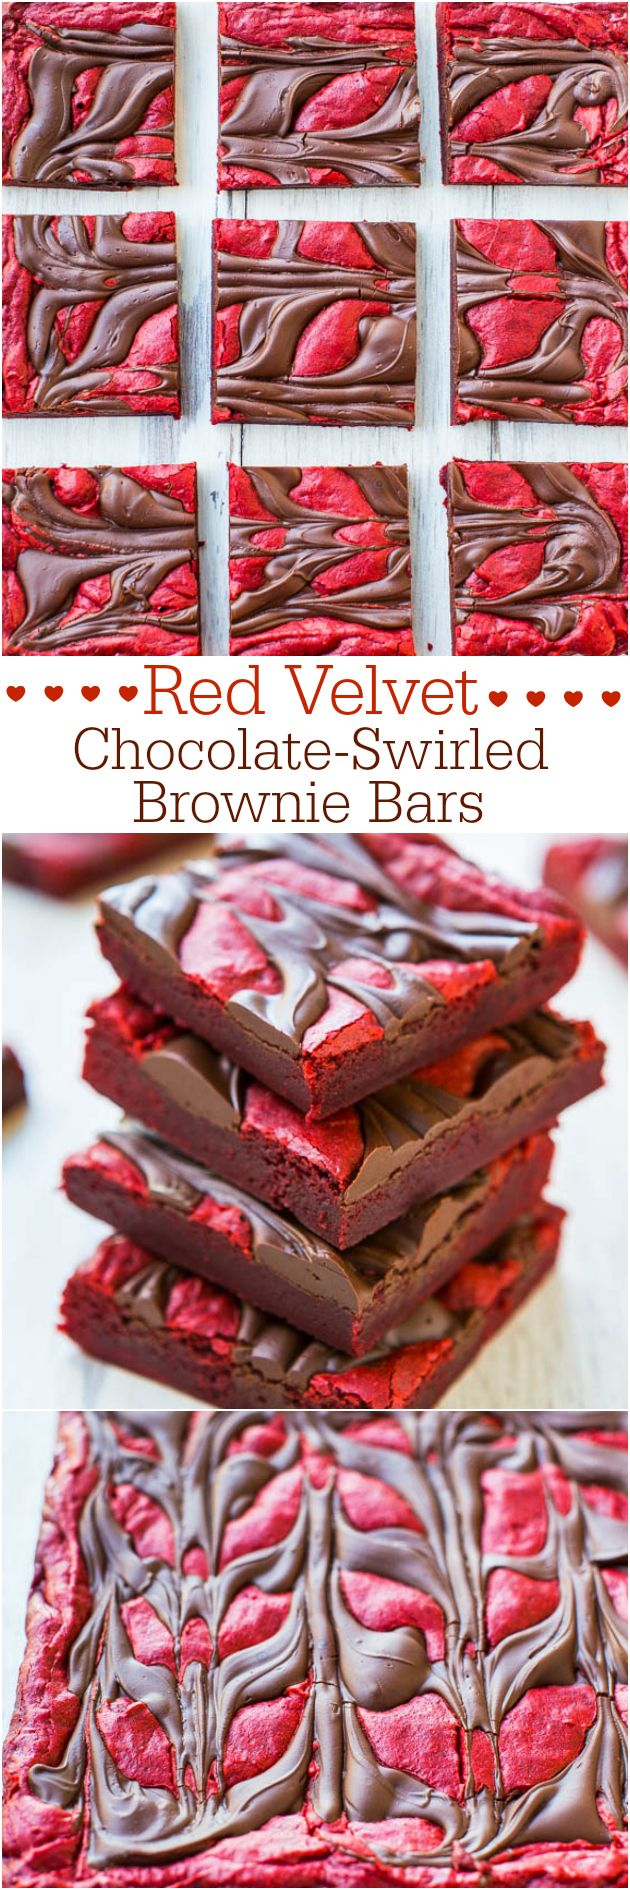 Red Velvet Chocolate-Swirled Brownie Bars {from scratch, not cake mix} - Big chocolate rivers in every bite!! Velvety soft and so good!!!